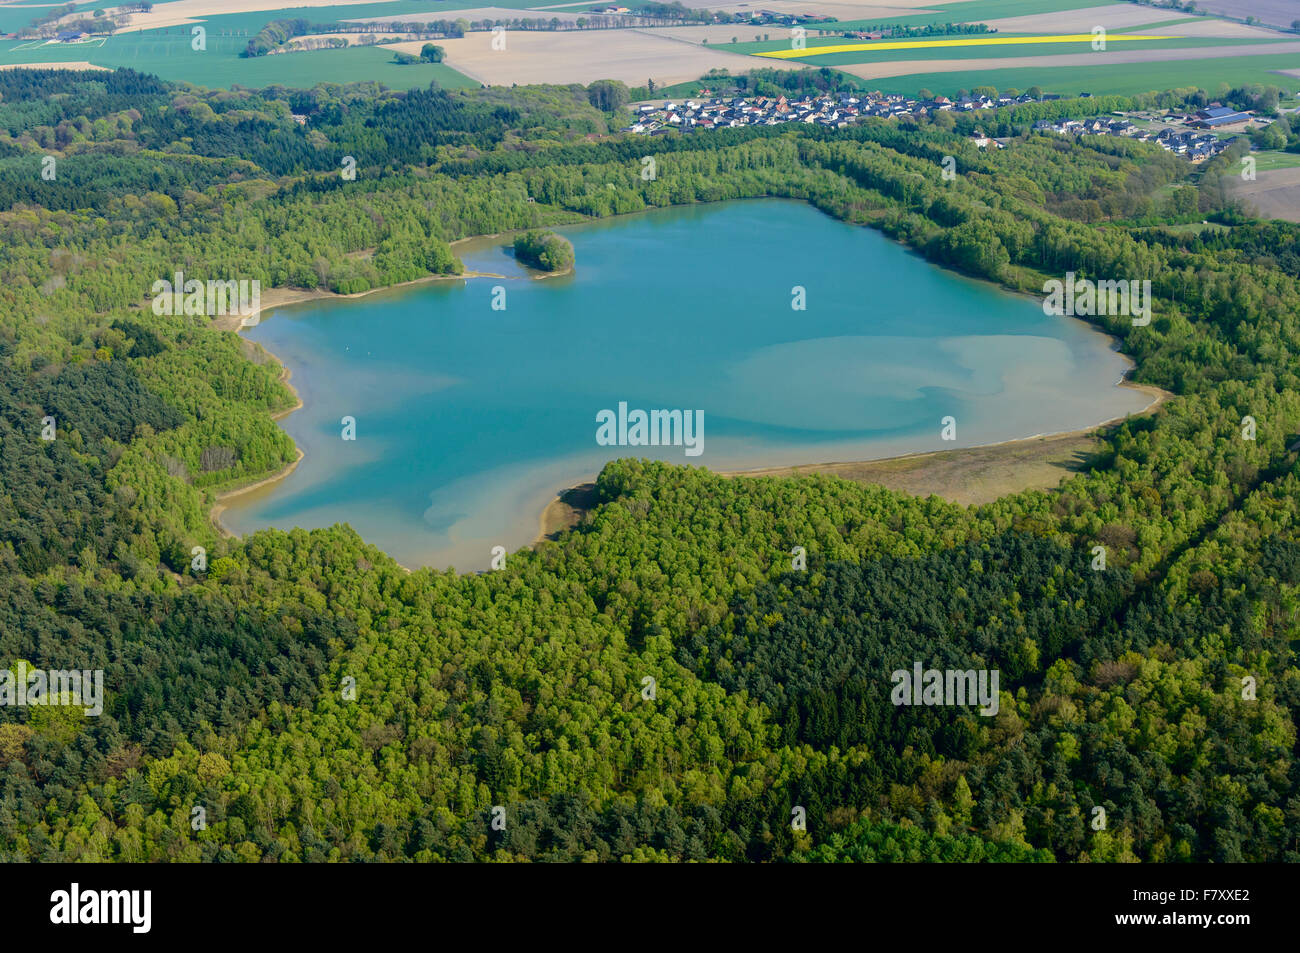 the dammer bergsee near damme (dümmer) from above, vechta district, niedersachsen, germany - Stock Image